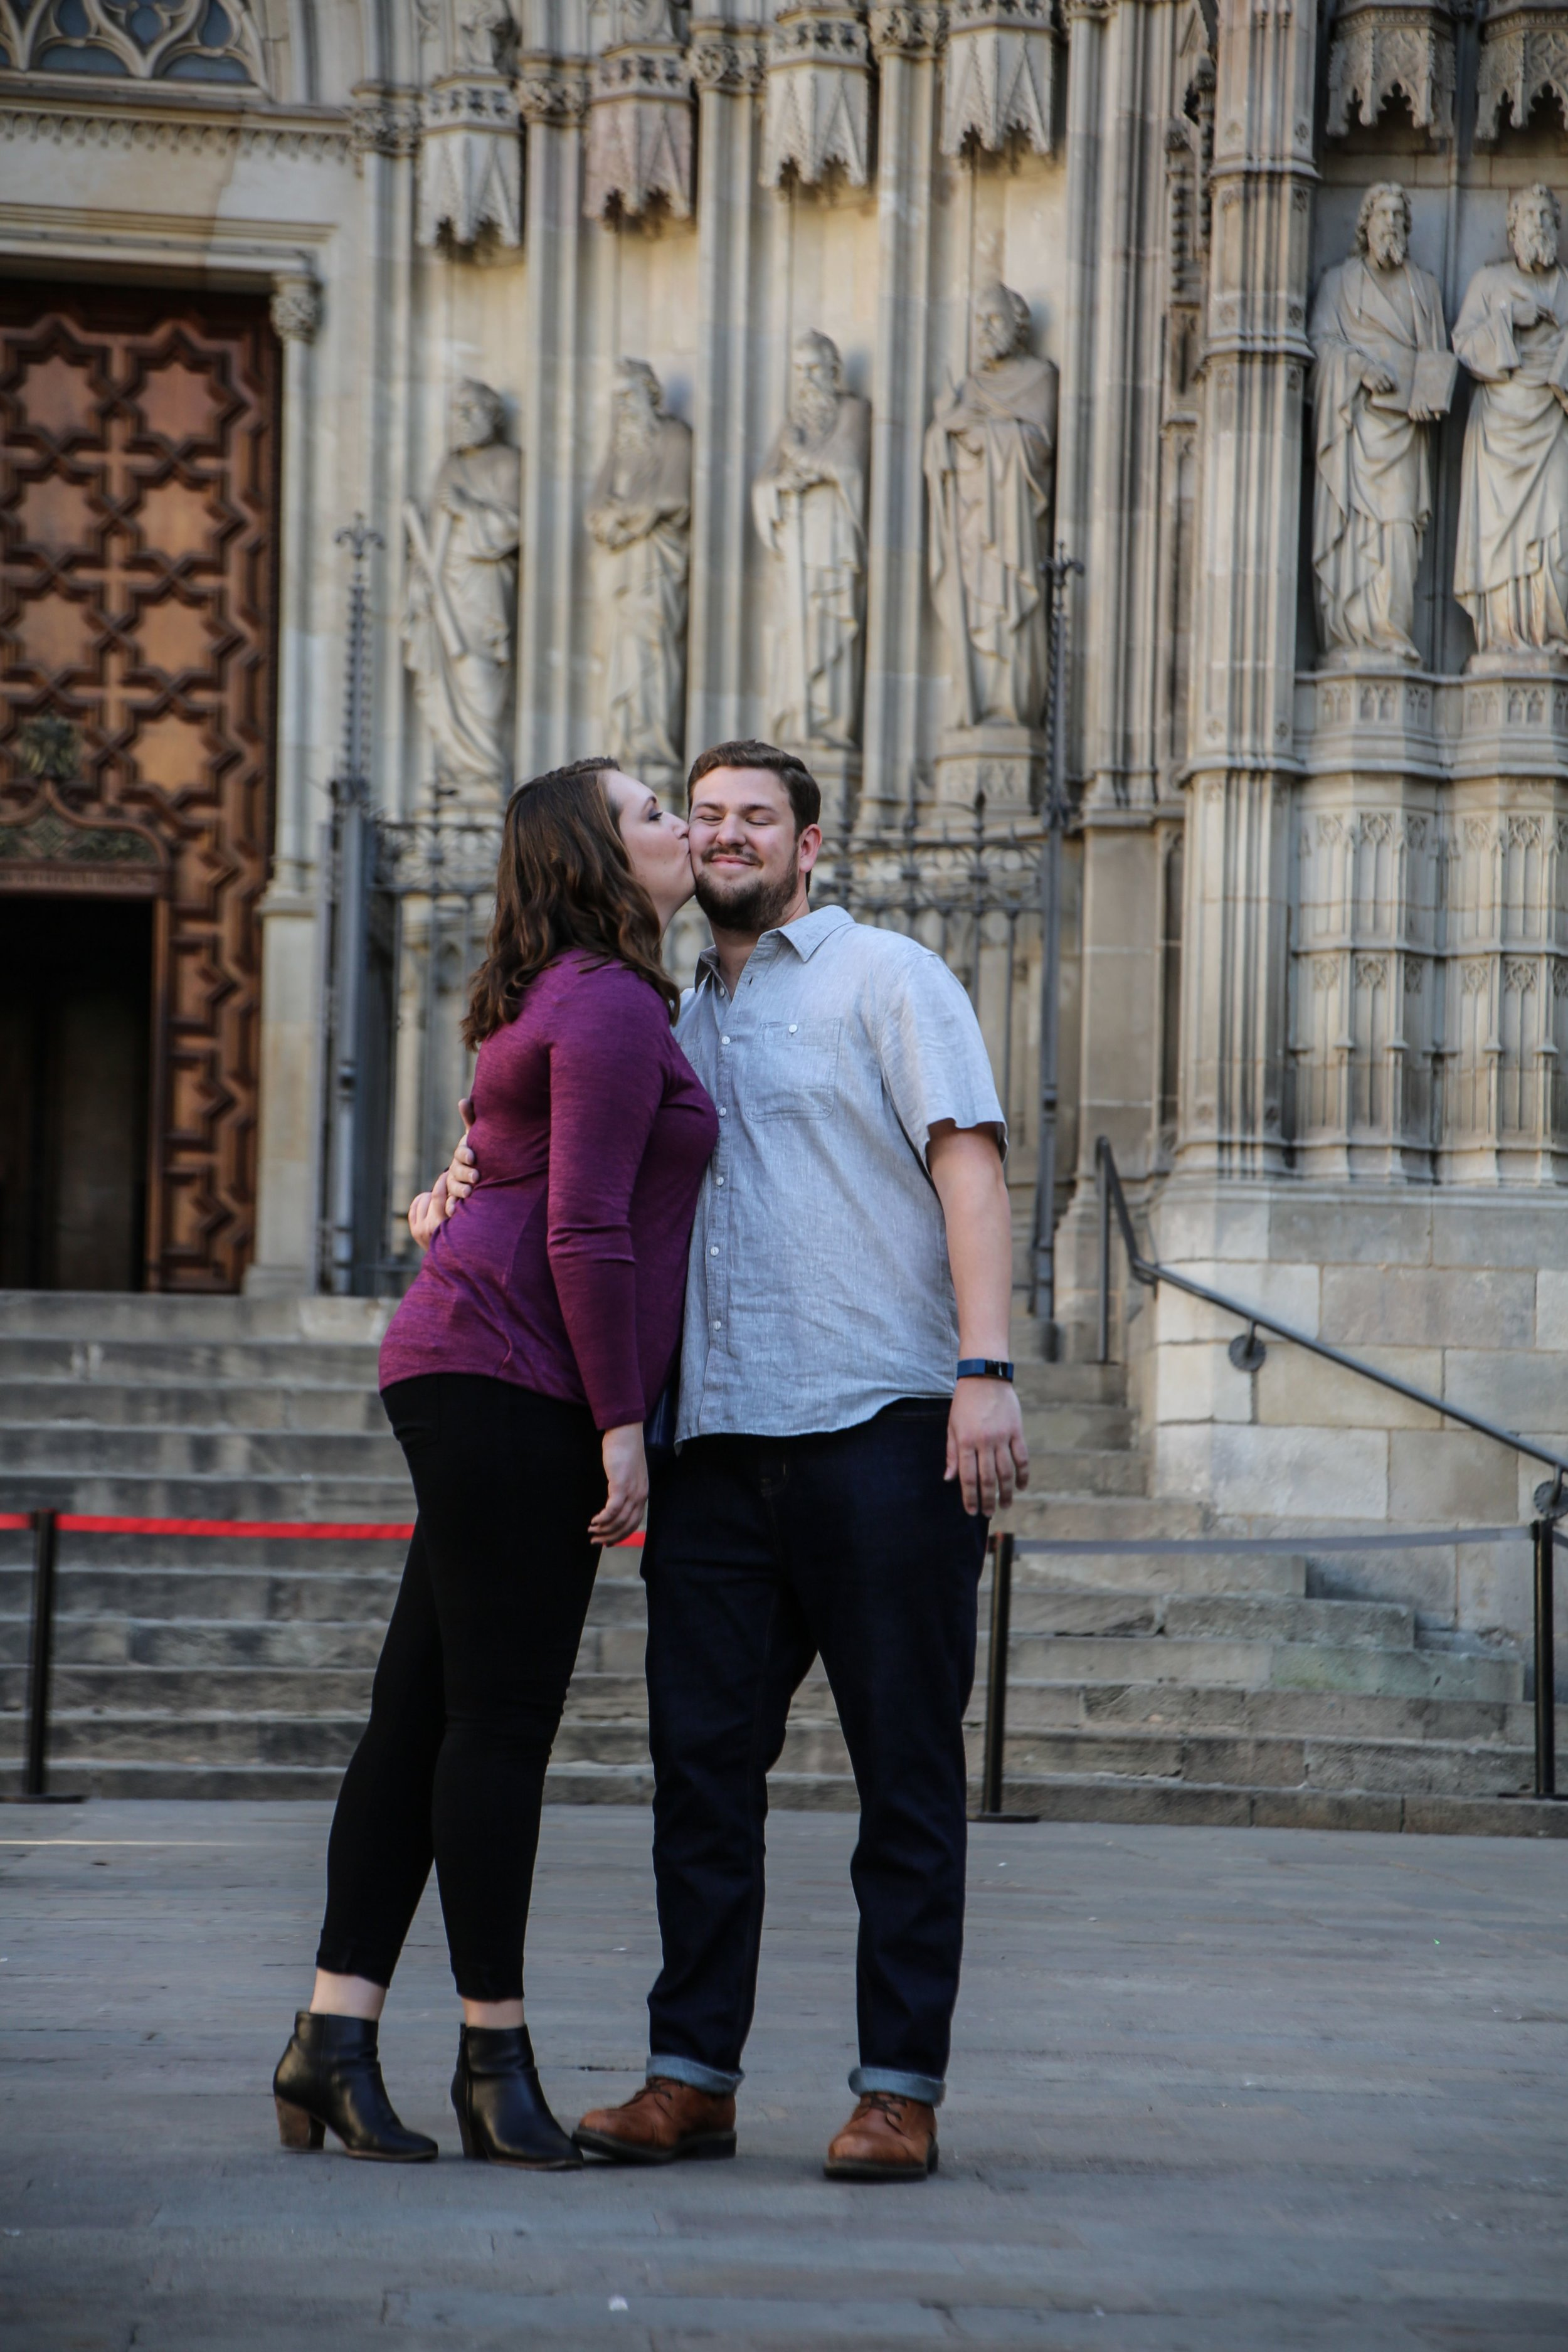 It happened in Barcelona the day Catalonia declared independence! - We got engaged to the sound of canons in the background. While Catalonia declared independence from Spain, Andrew declared his love for me while our fellow Airbnb photo tour participants looked on.-Stephanie »wedding date: September 22, 2018